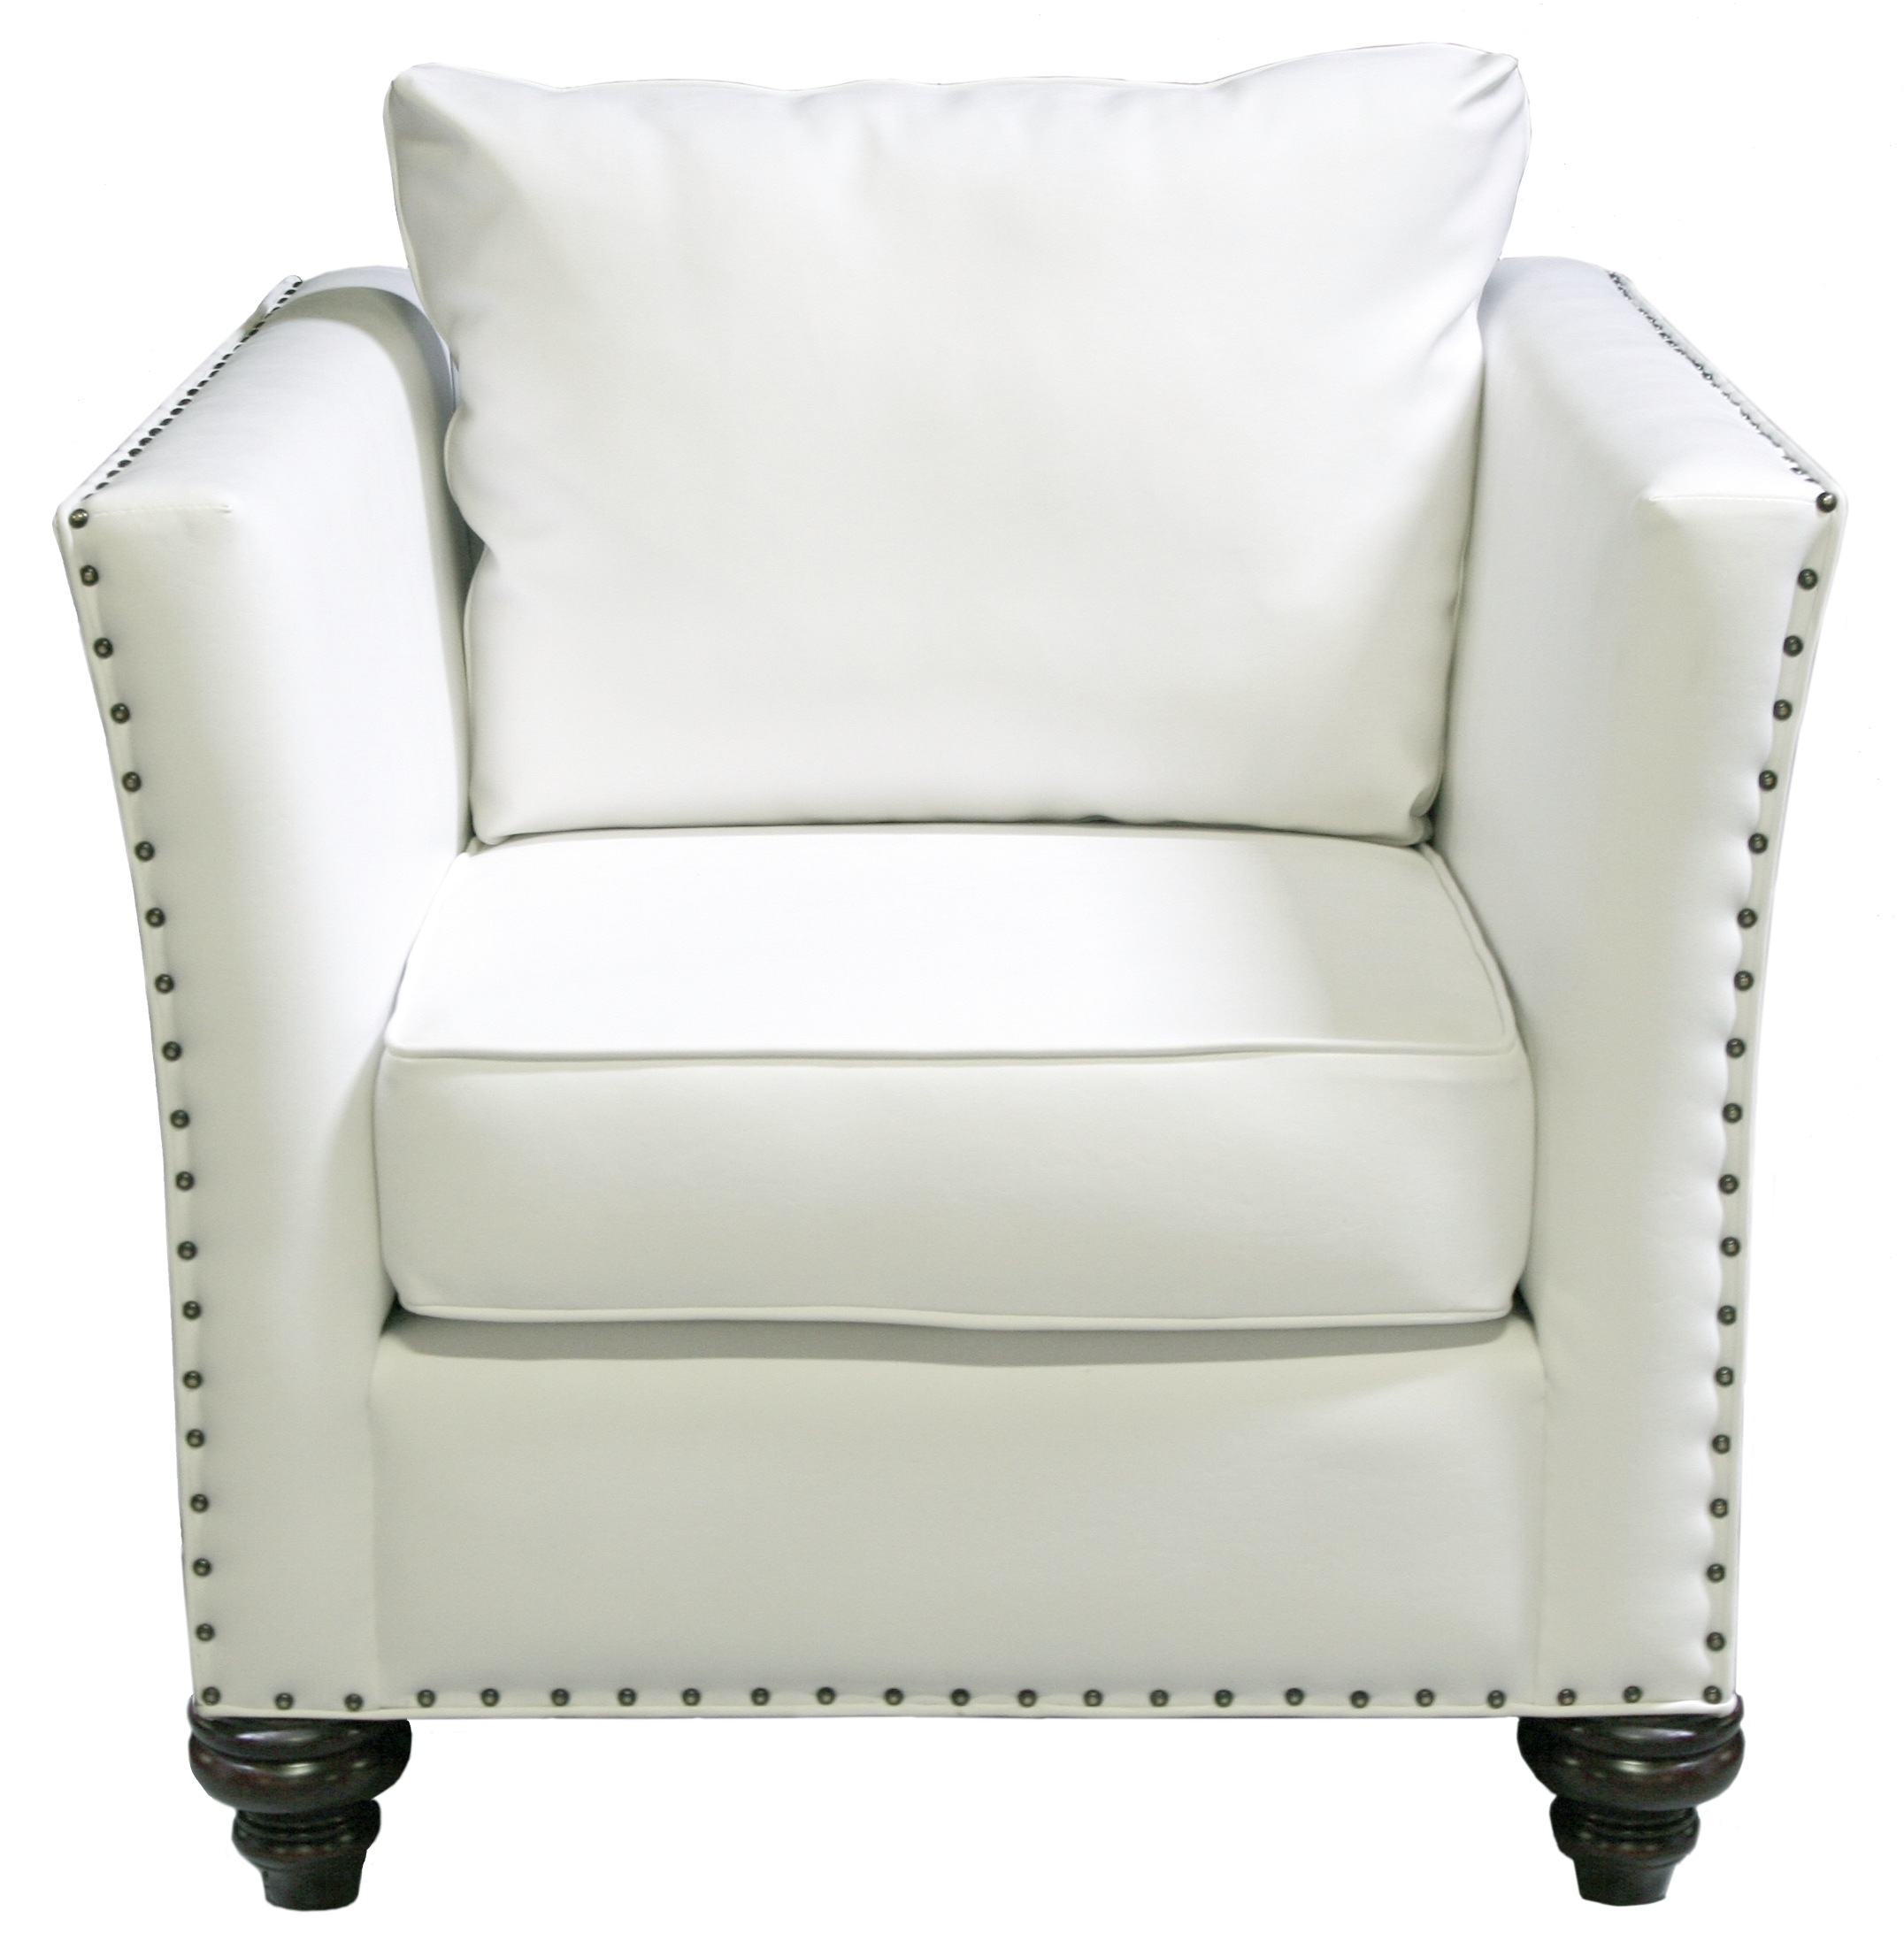 Usage of White Leather Armchair